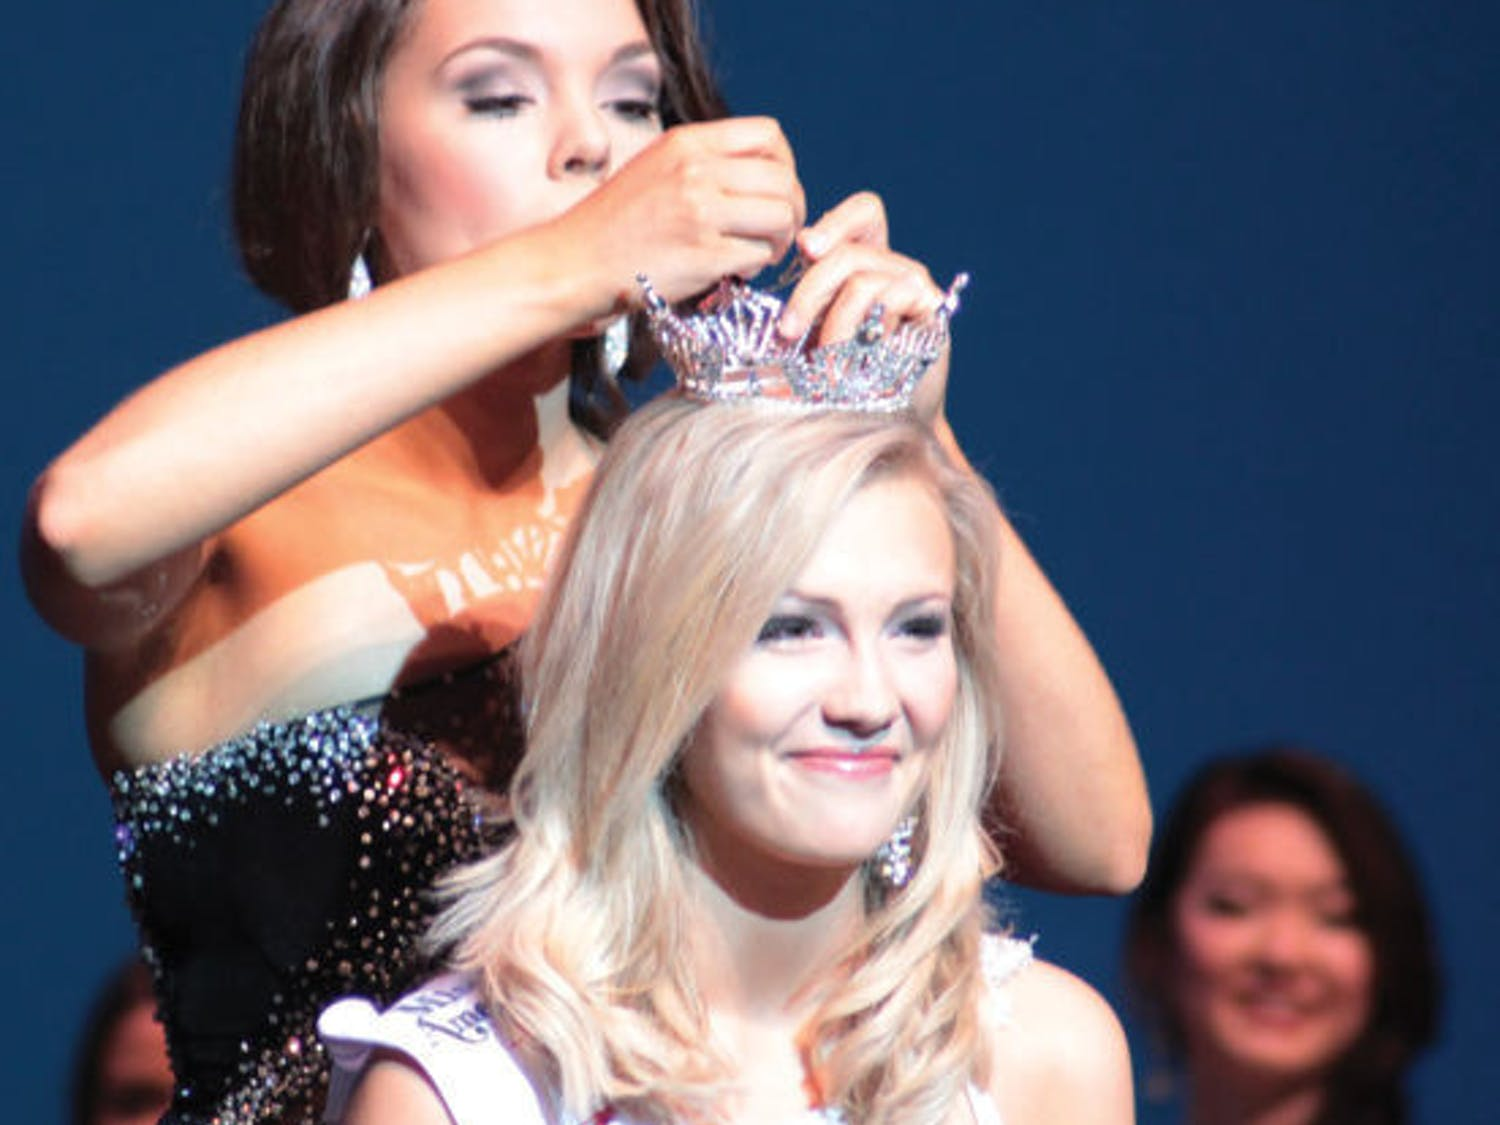 Telecommunication sophomore Elizabeth Fechtel is crowned Miss UF 2014 at the Curtis M. Phillips Center for the Performing Arts on Monday night.